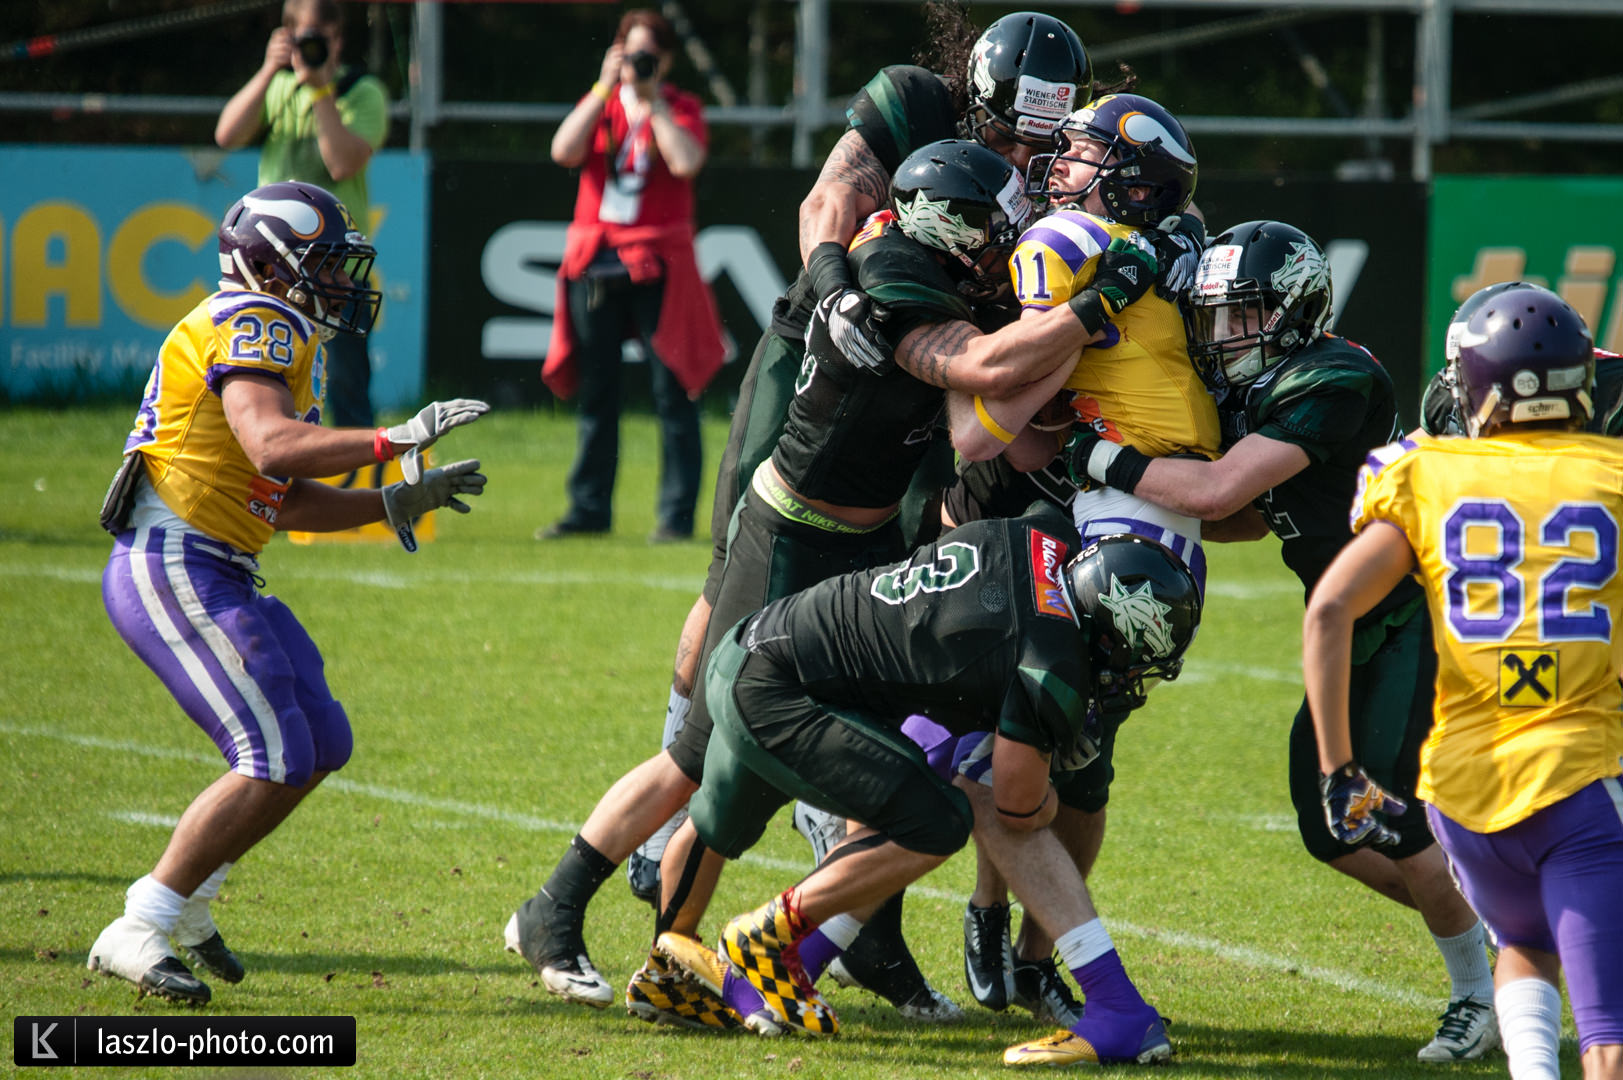 Vikings vs. Dragons-DSC_5801